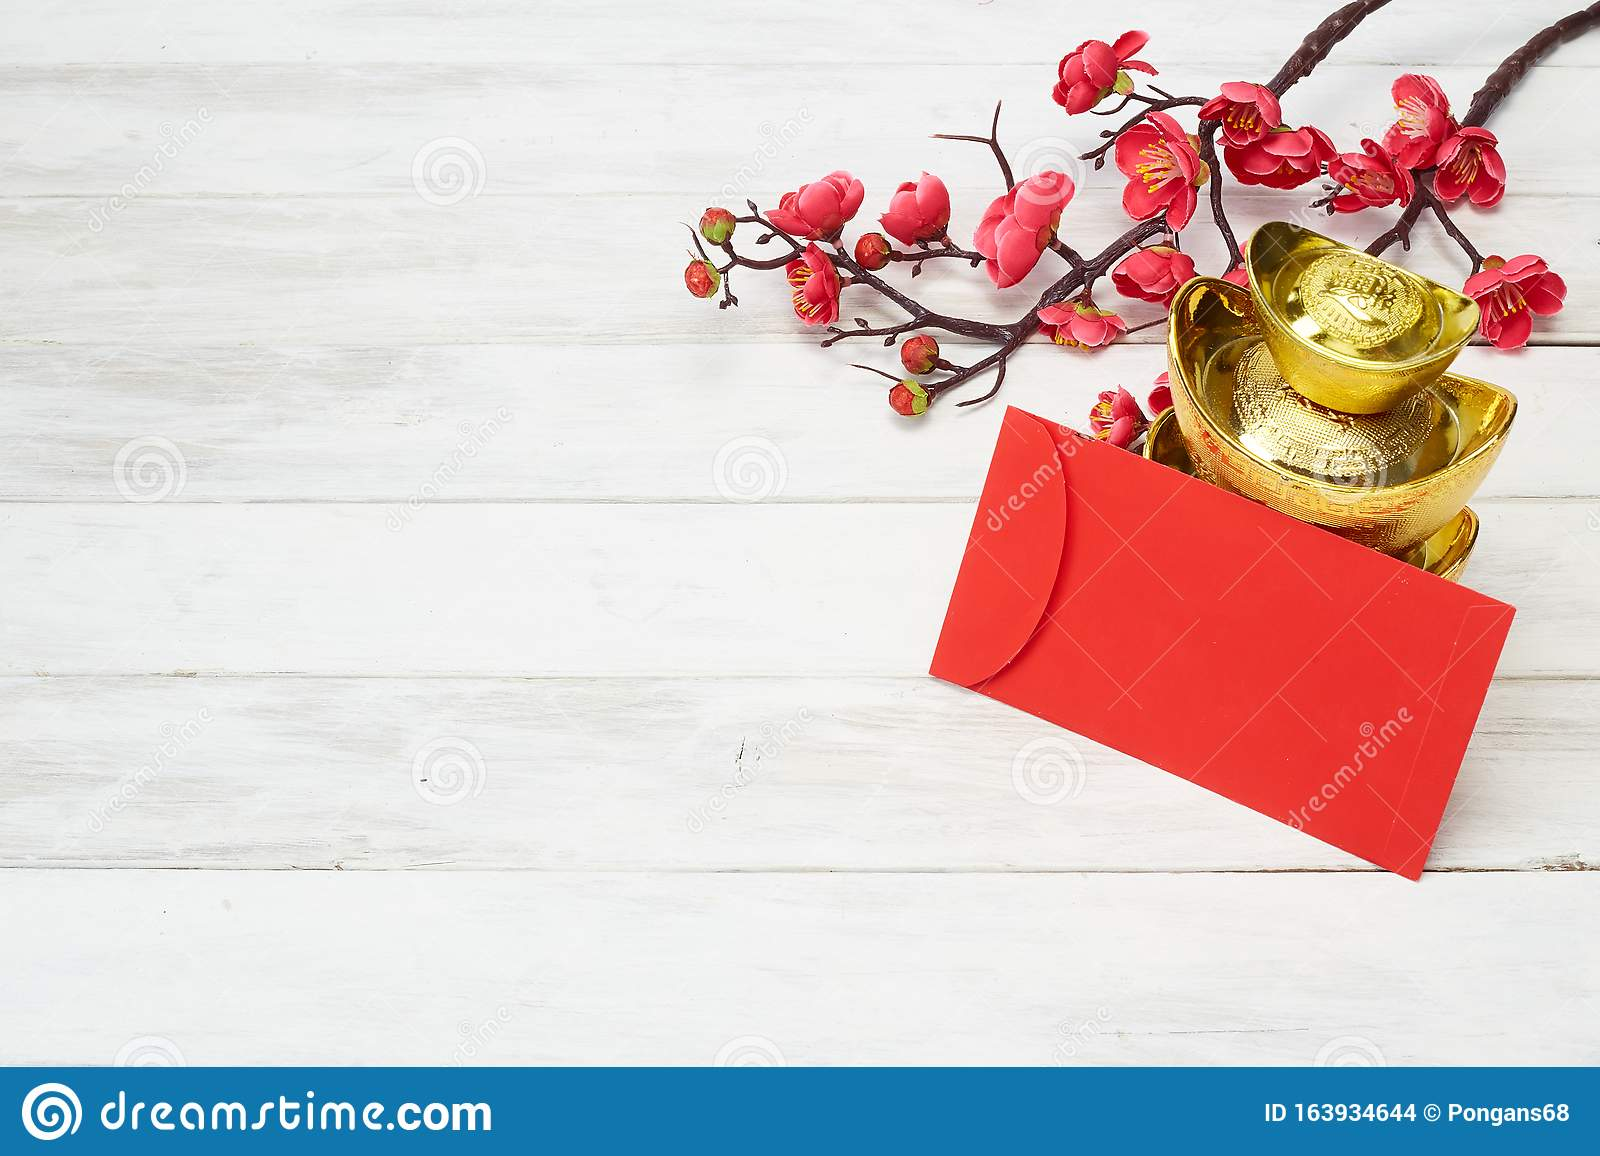 Chinese New Year decoration on wooden background